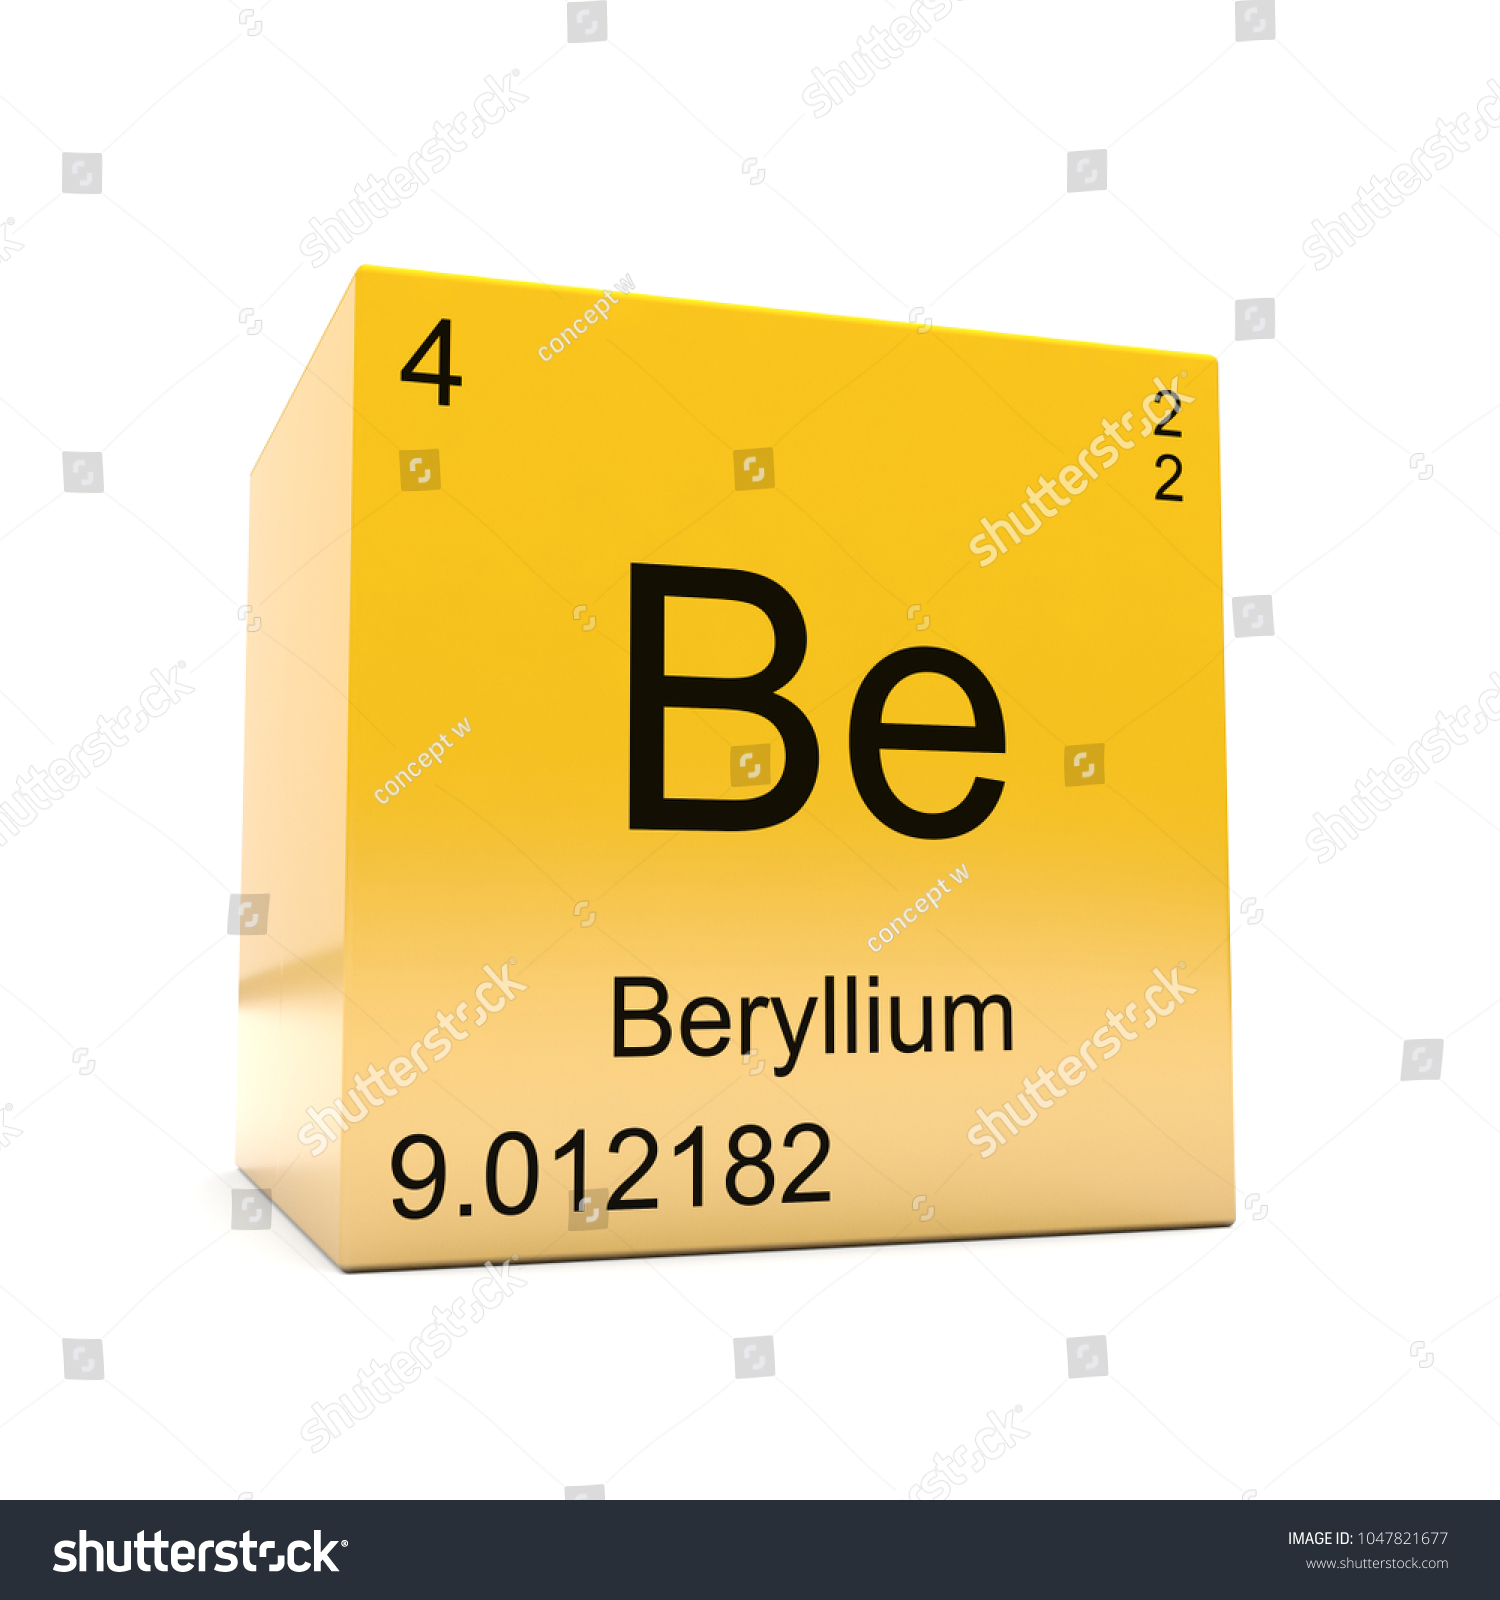 Periodic table of elements beryllium gallery periodic table and beryllium chemical symbol images symbol and sign ideas beryllium chemical element symbol periodic table stock beryllium buycottarizona Image collections